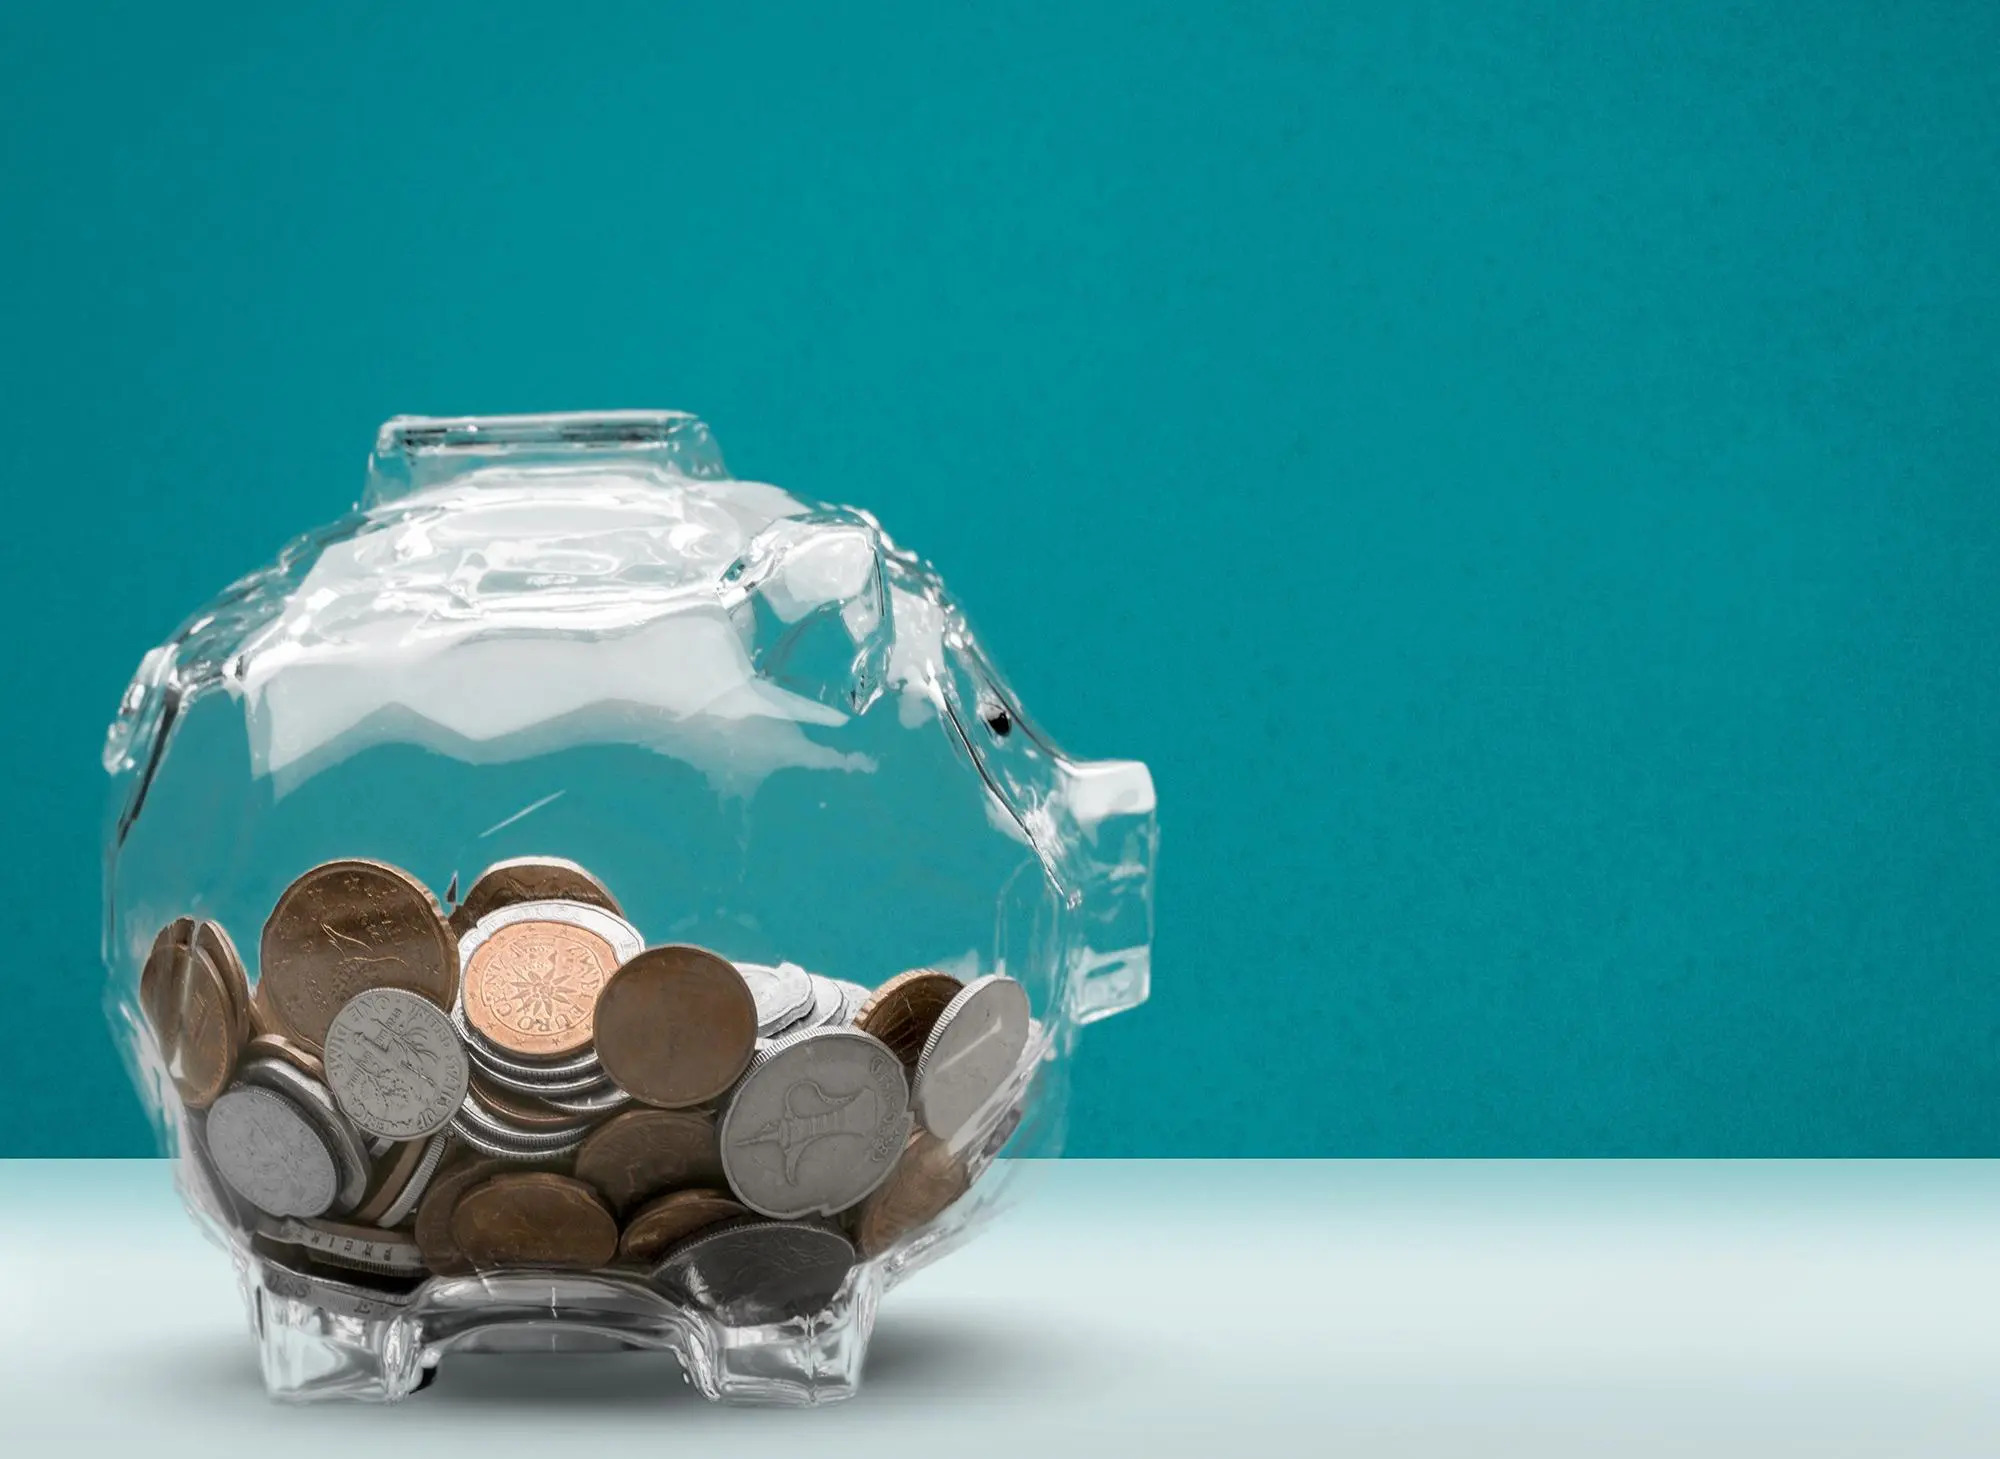 What You Need to Know About Deposits